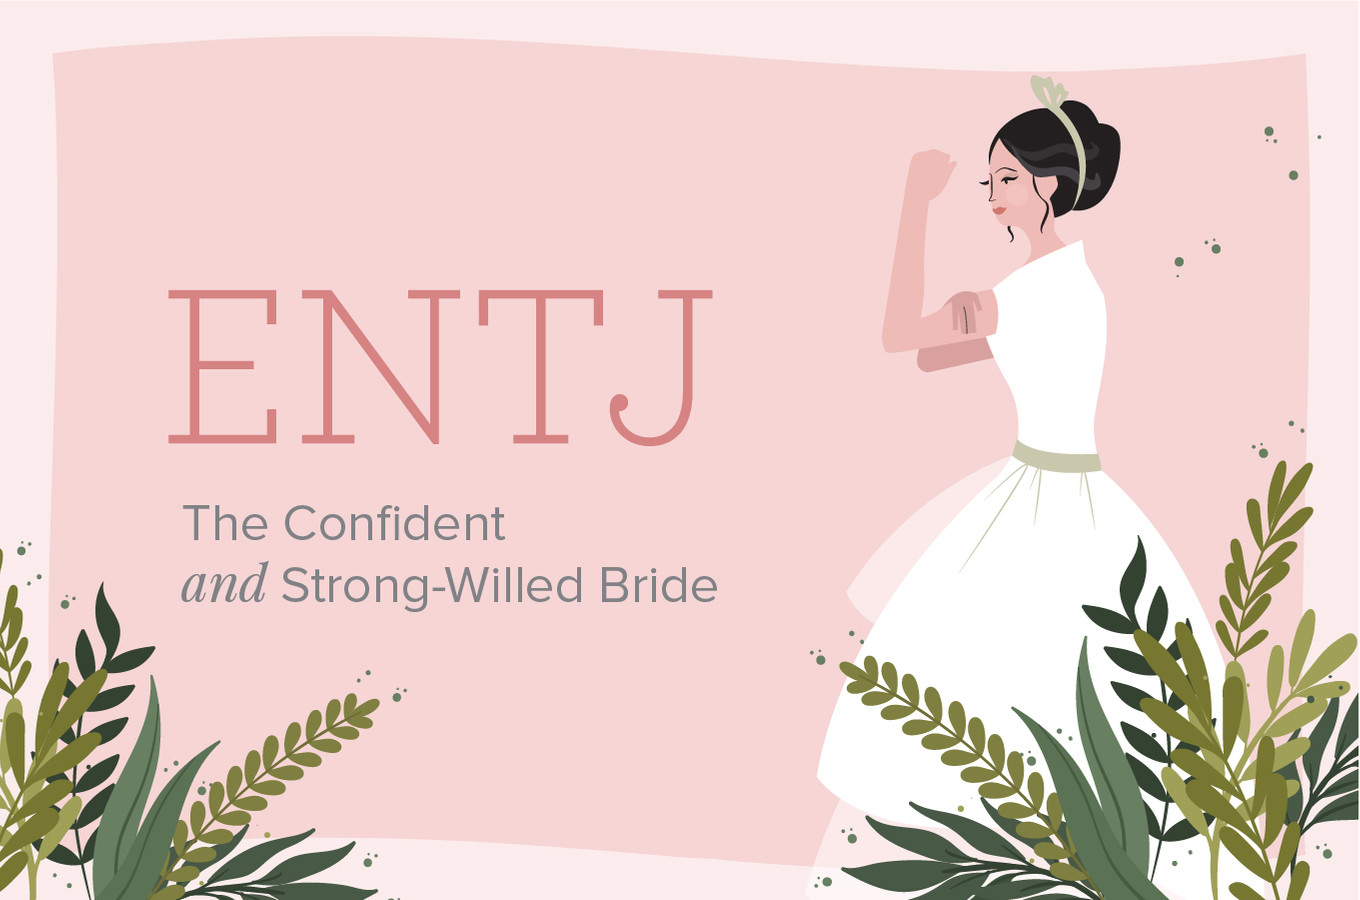 What Kind of Bride Are You Based on Your Myers-Briggs Personality